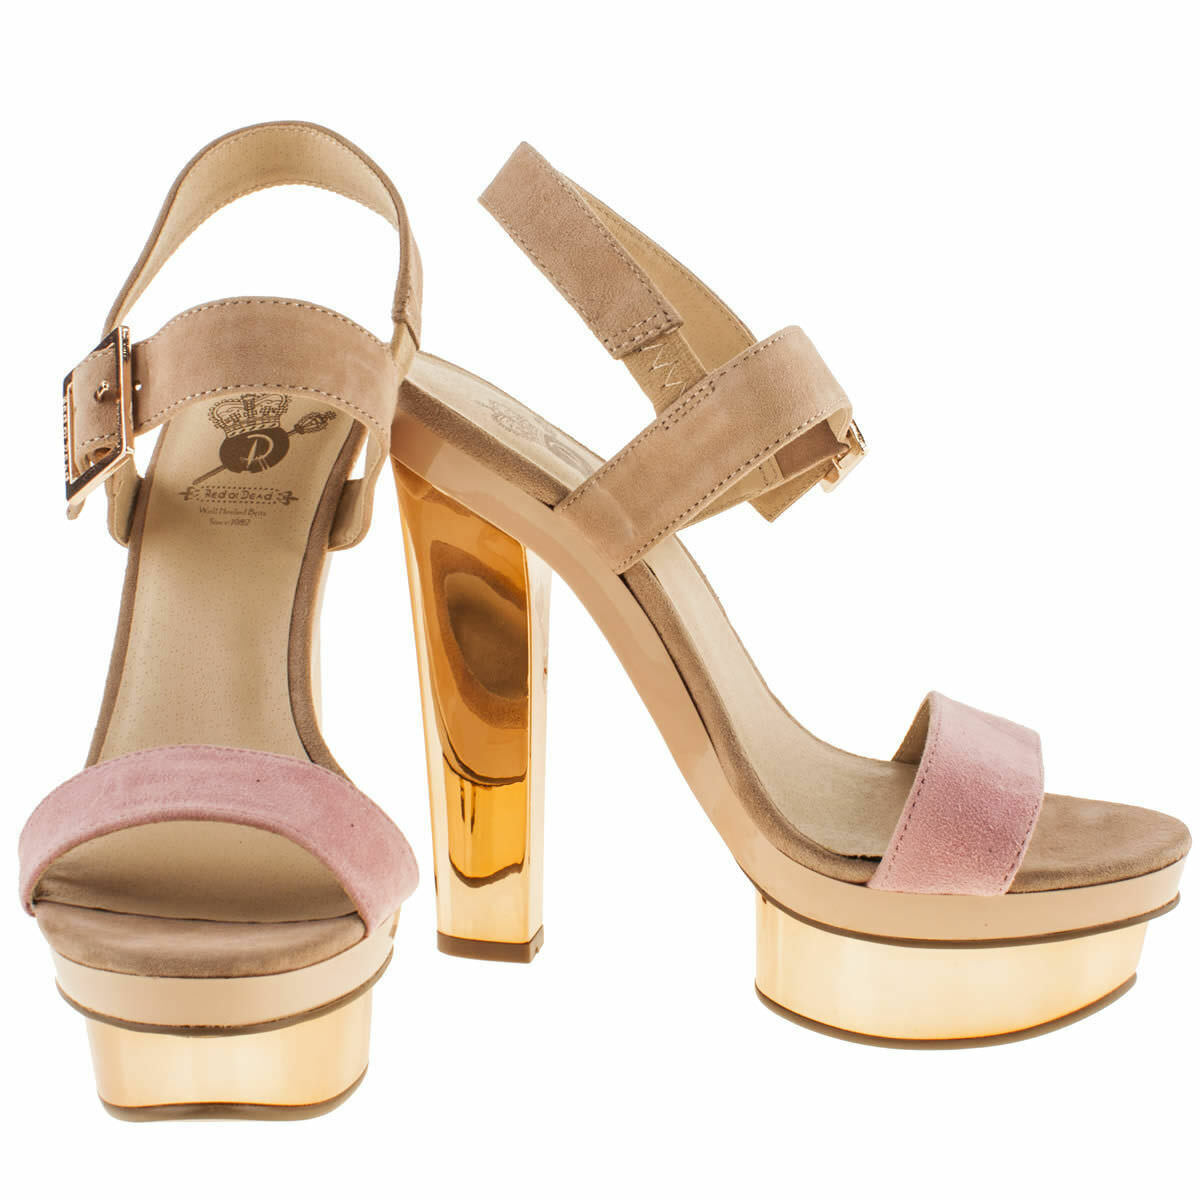 BNIB ROT Or Dead New Day UK Gold Platform Heel Schuhes UK Day 5 e4742a